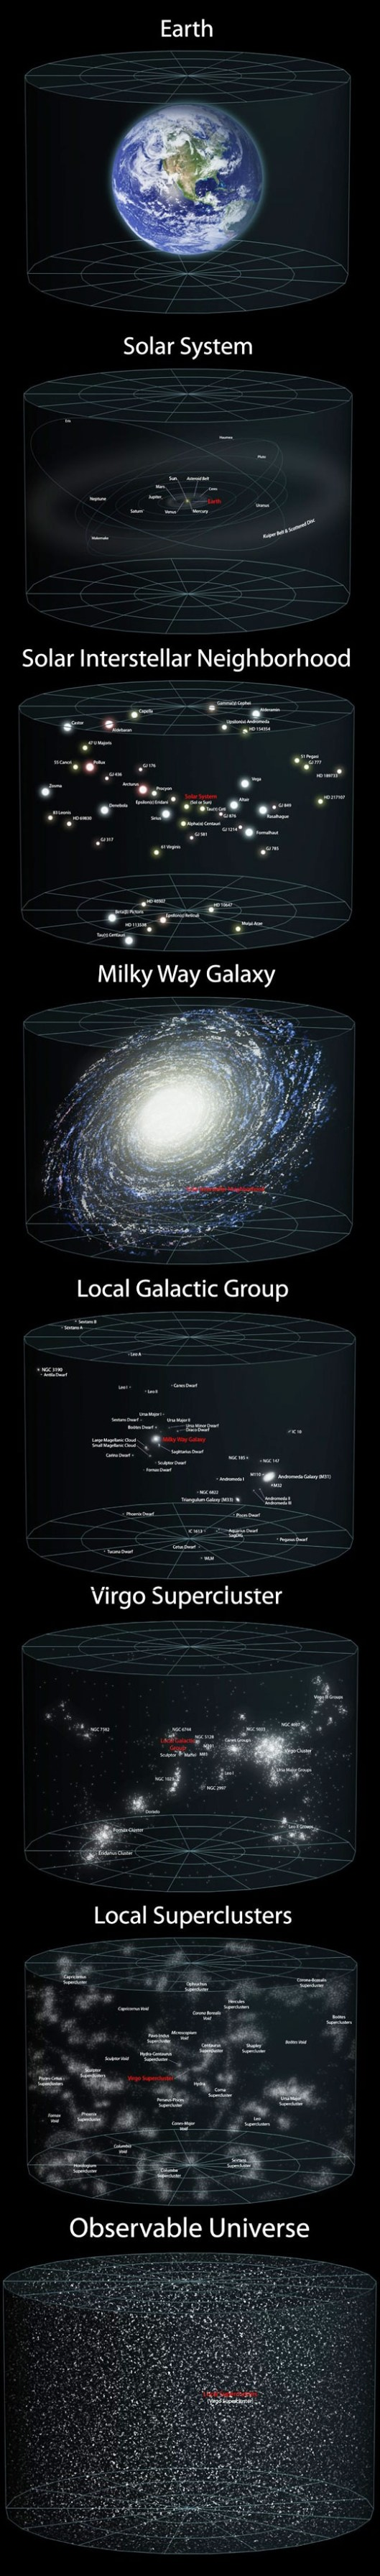 perspective of universe_galaxy